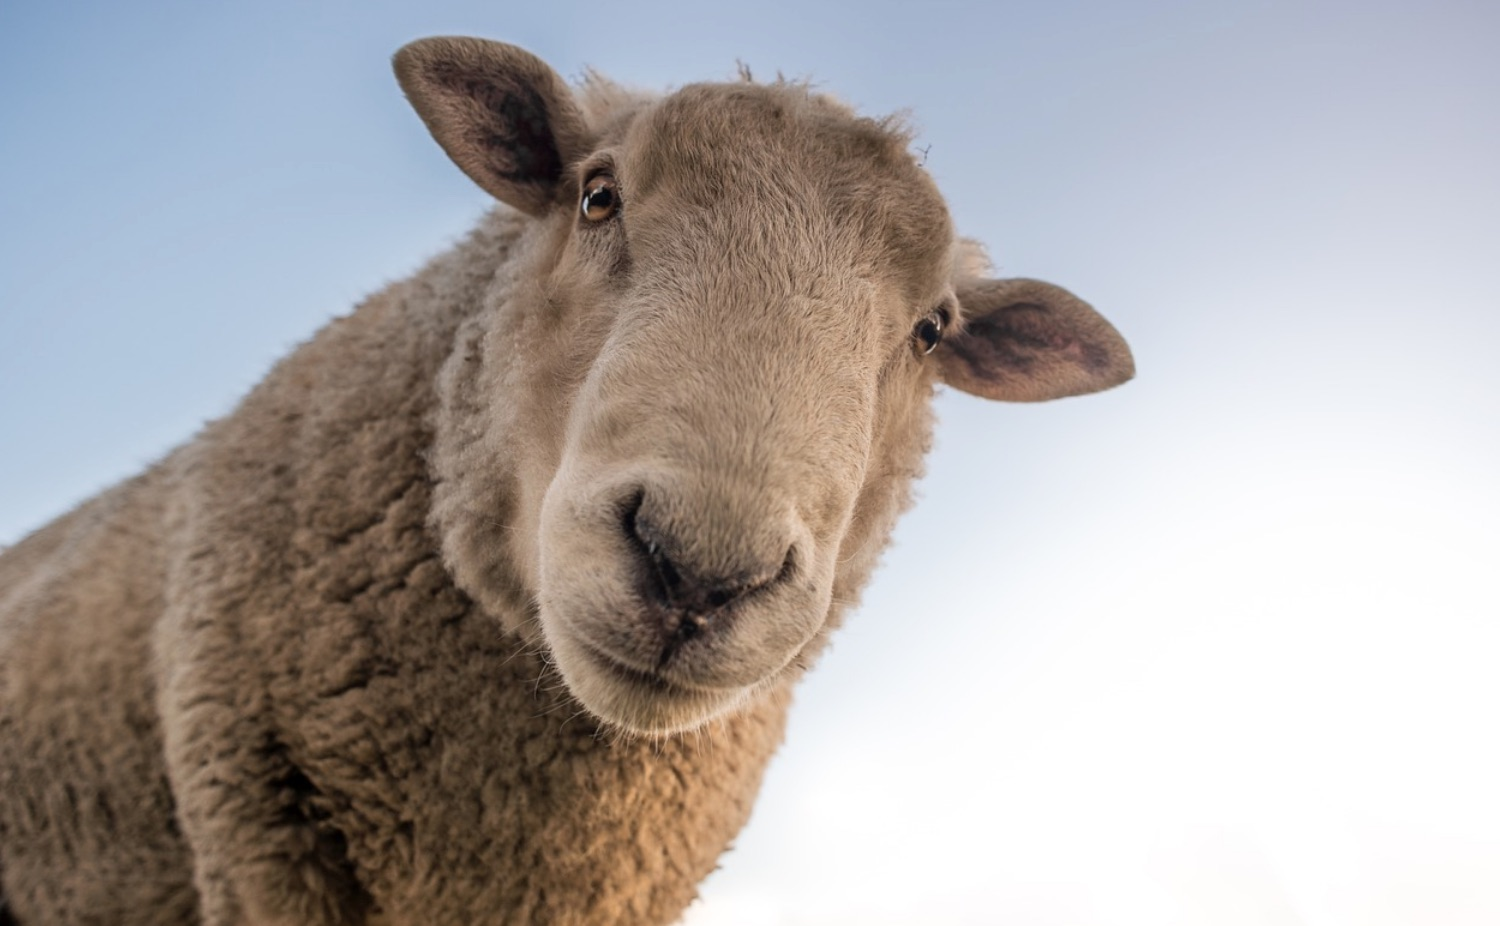 Sheep and the Wool Industry